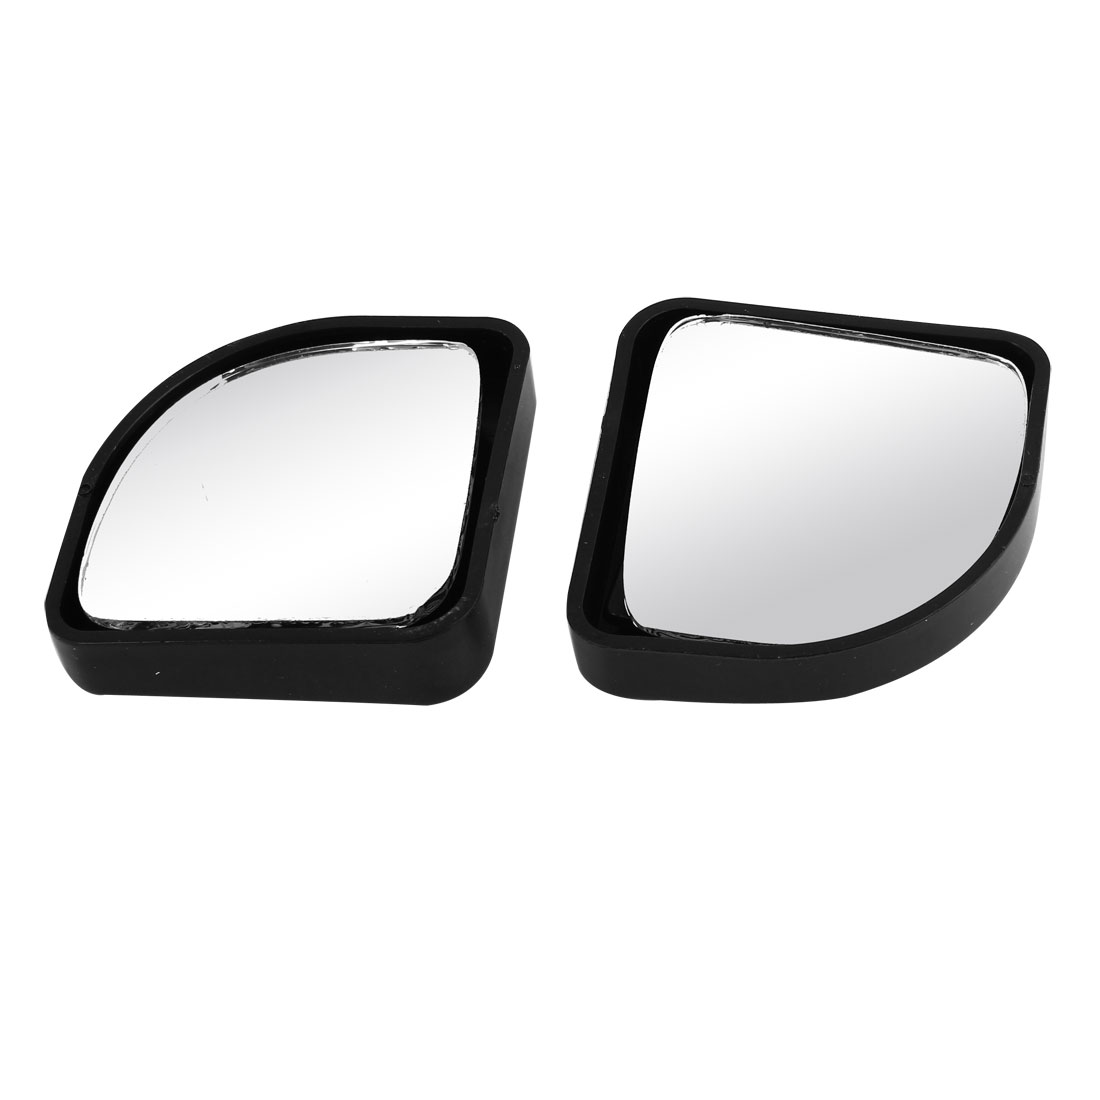 2 Pcs Car Black Plastic Frame Wide Angle Rearview Blind Spot Mirror